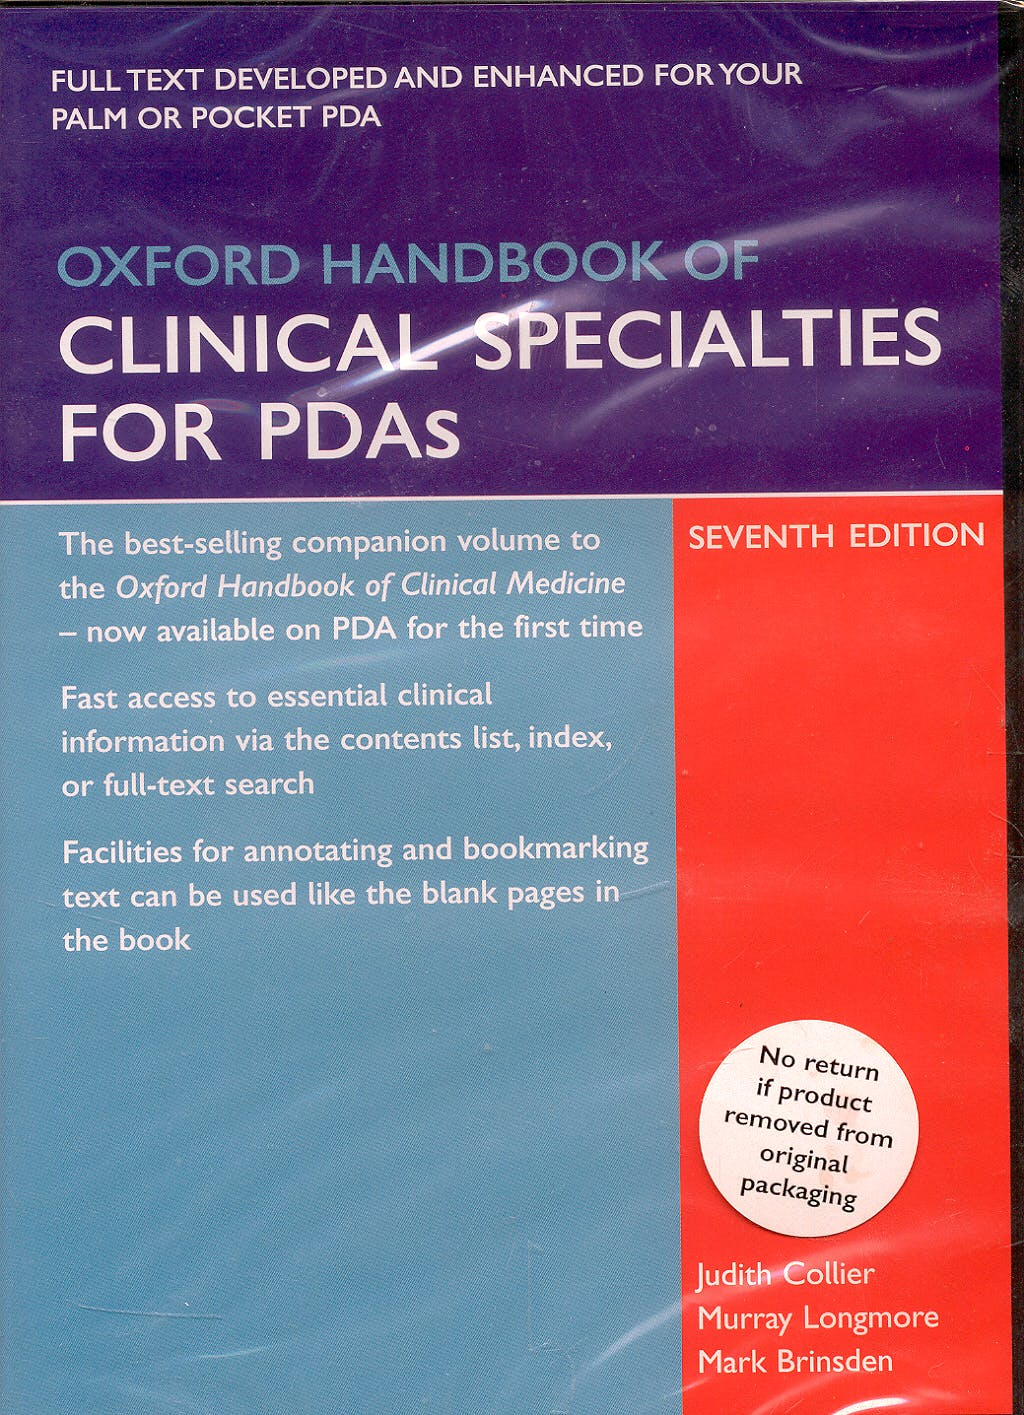 Oxford Handbook of Clinical Specialties for PDAs (7th Edition)